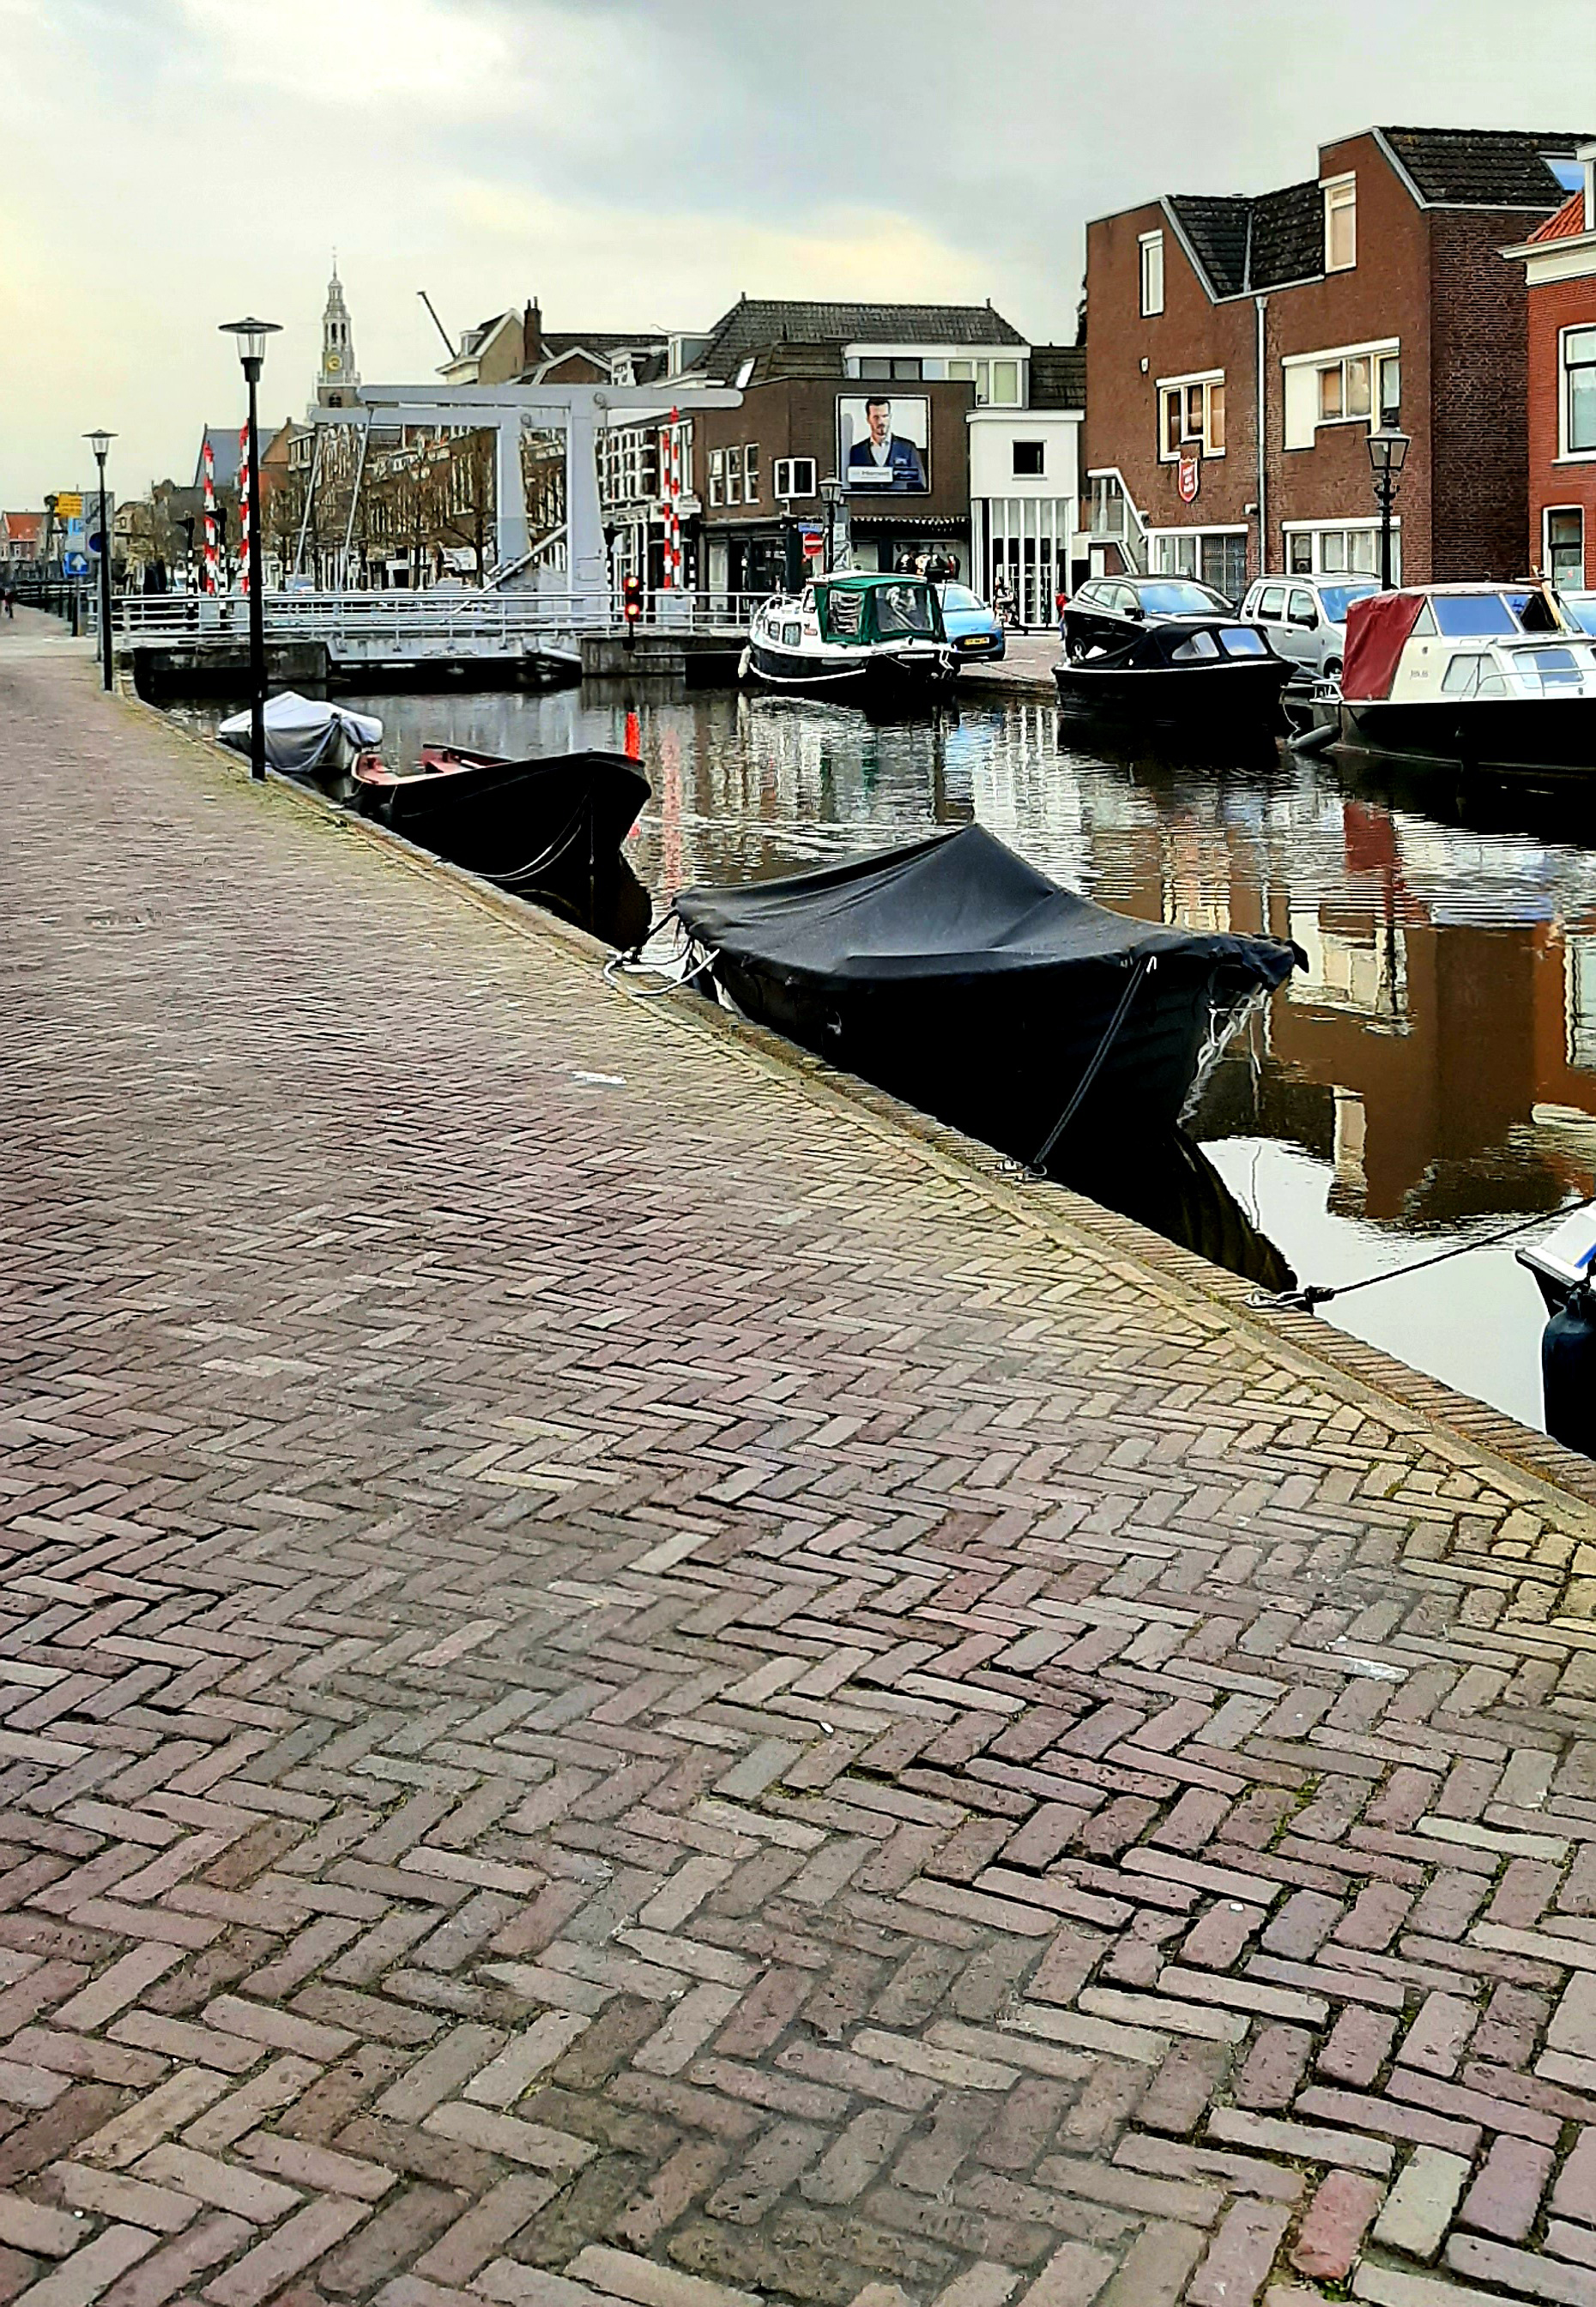 Photograph showing a canal with boats (some covered in protective fabric), buildings in the distance and a brick footpath in the foreground